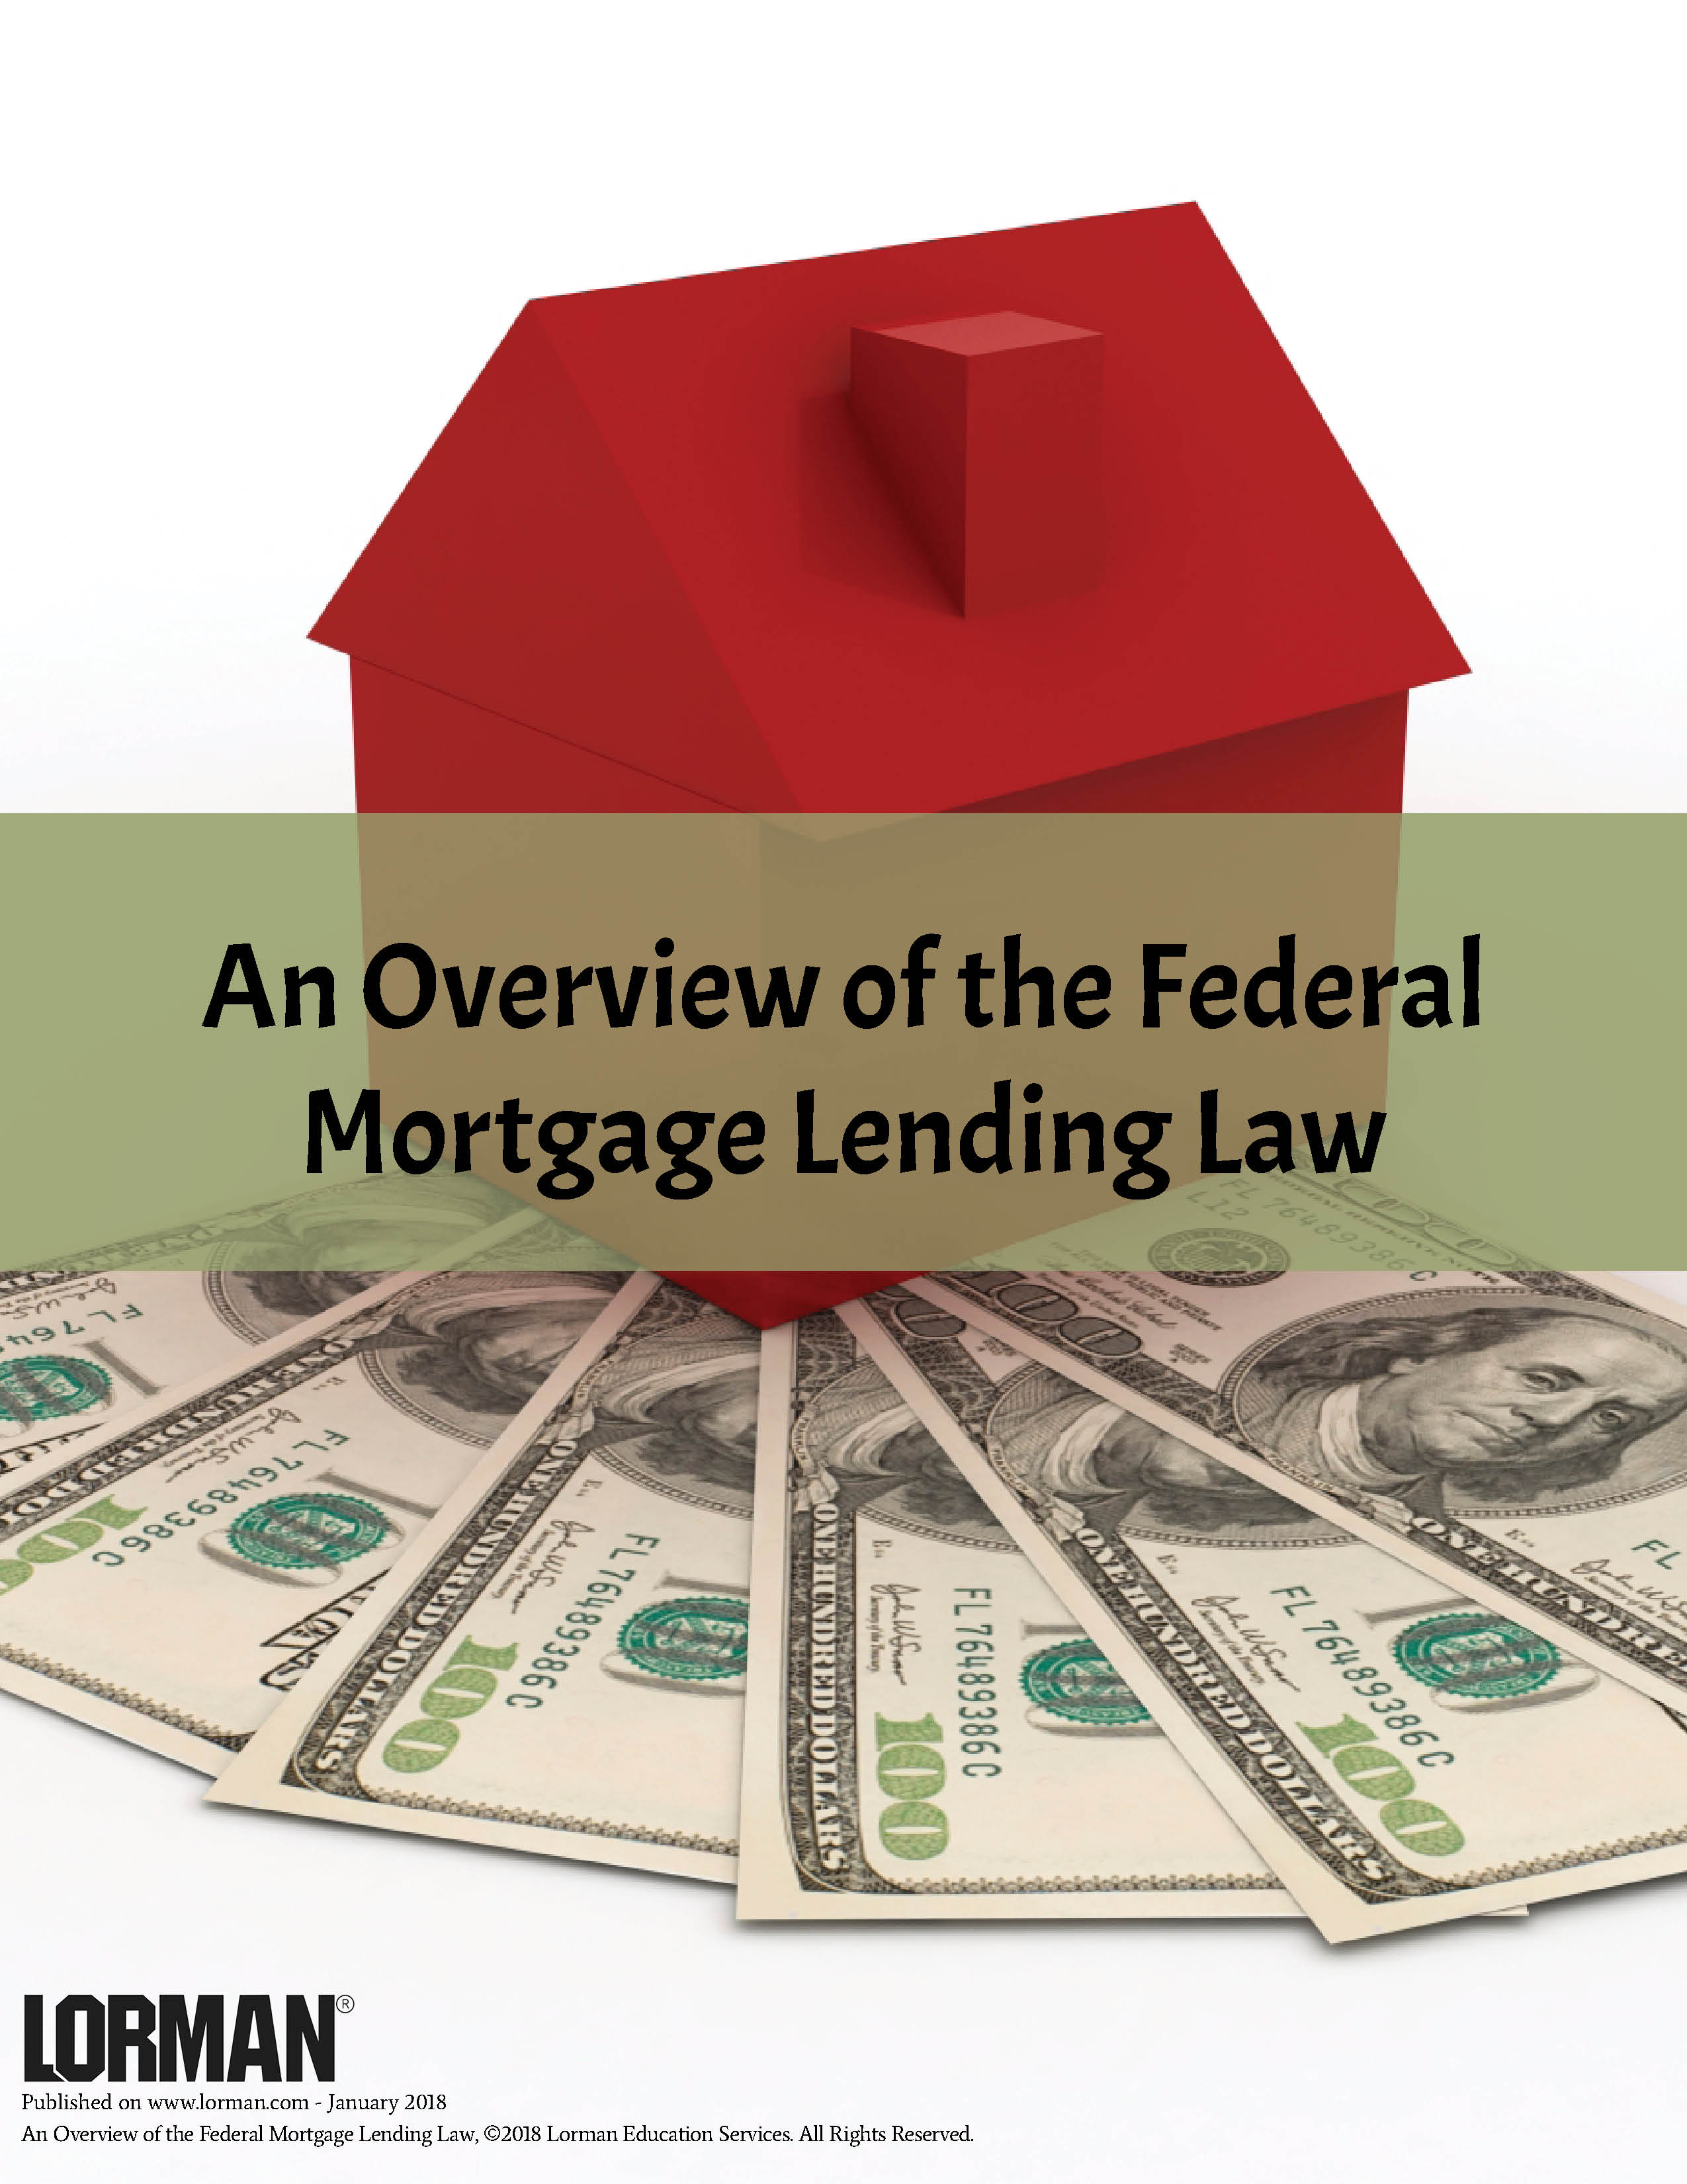 An Overview of the Federal Mortgage Lending Law